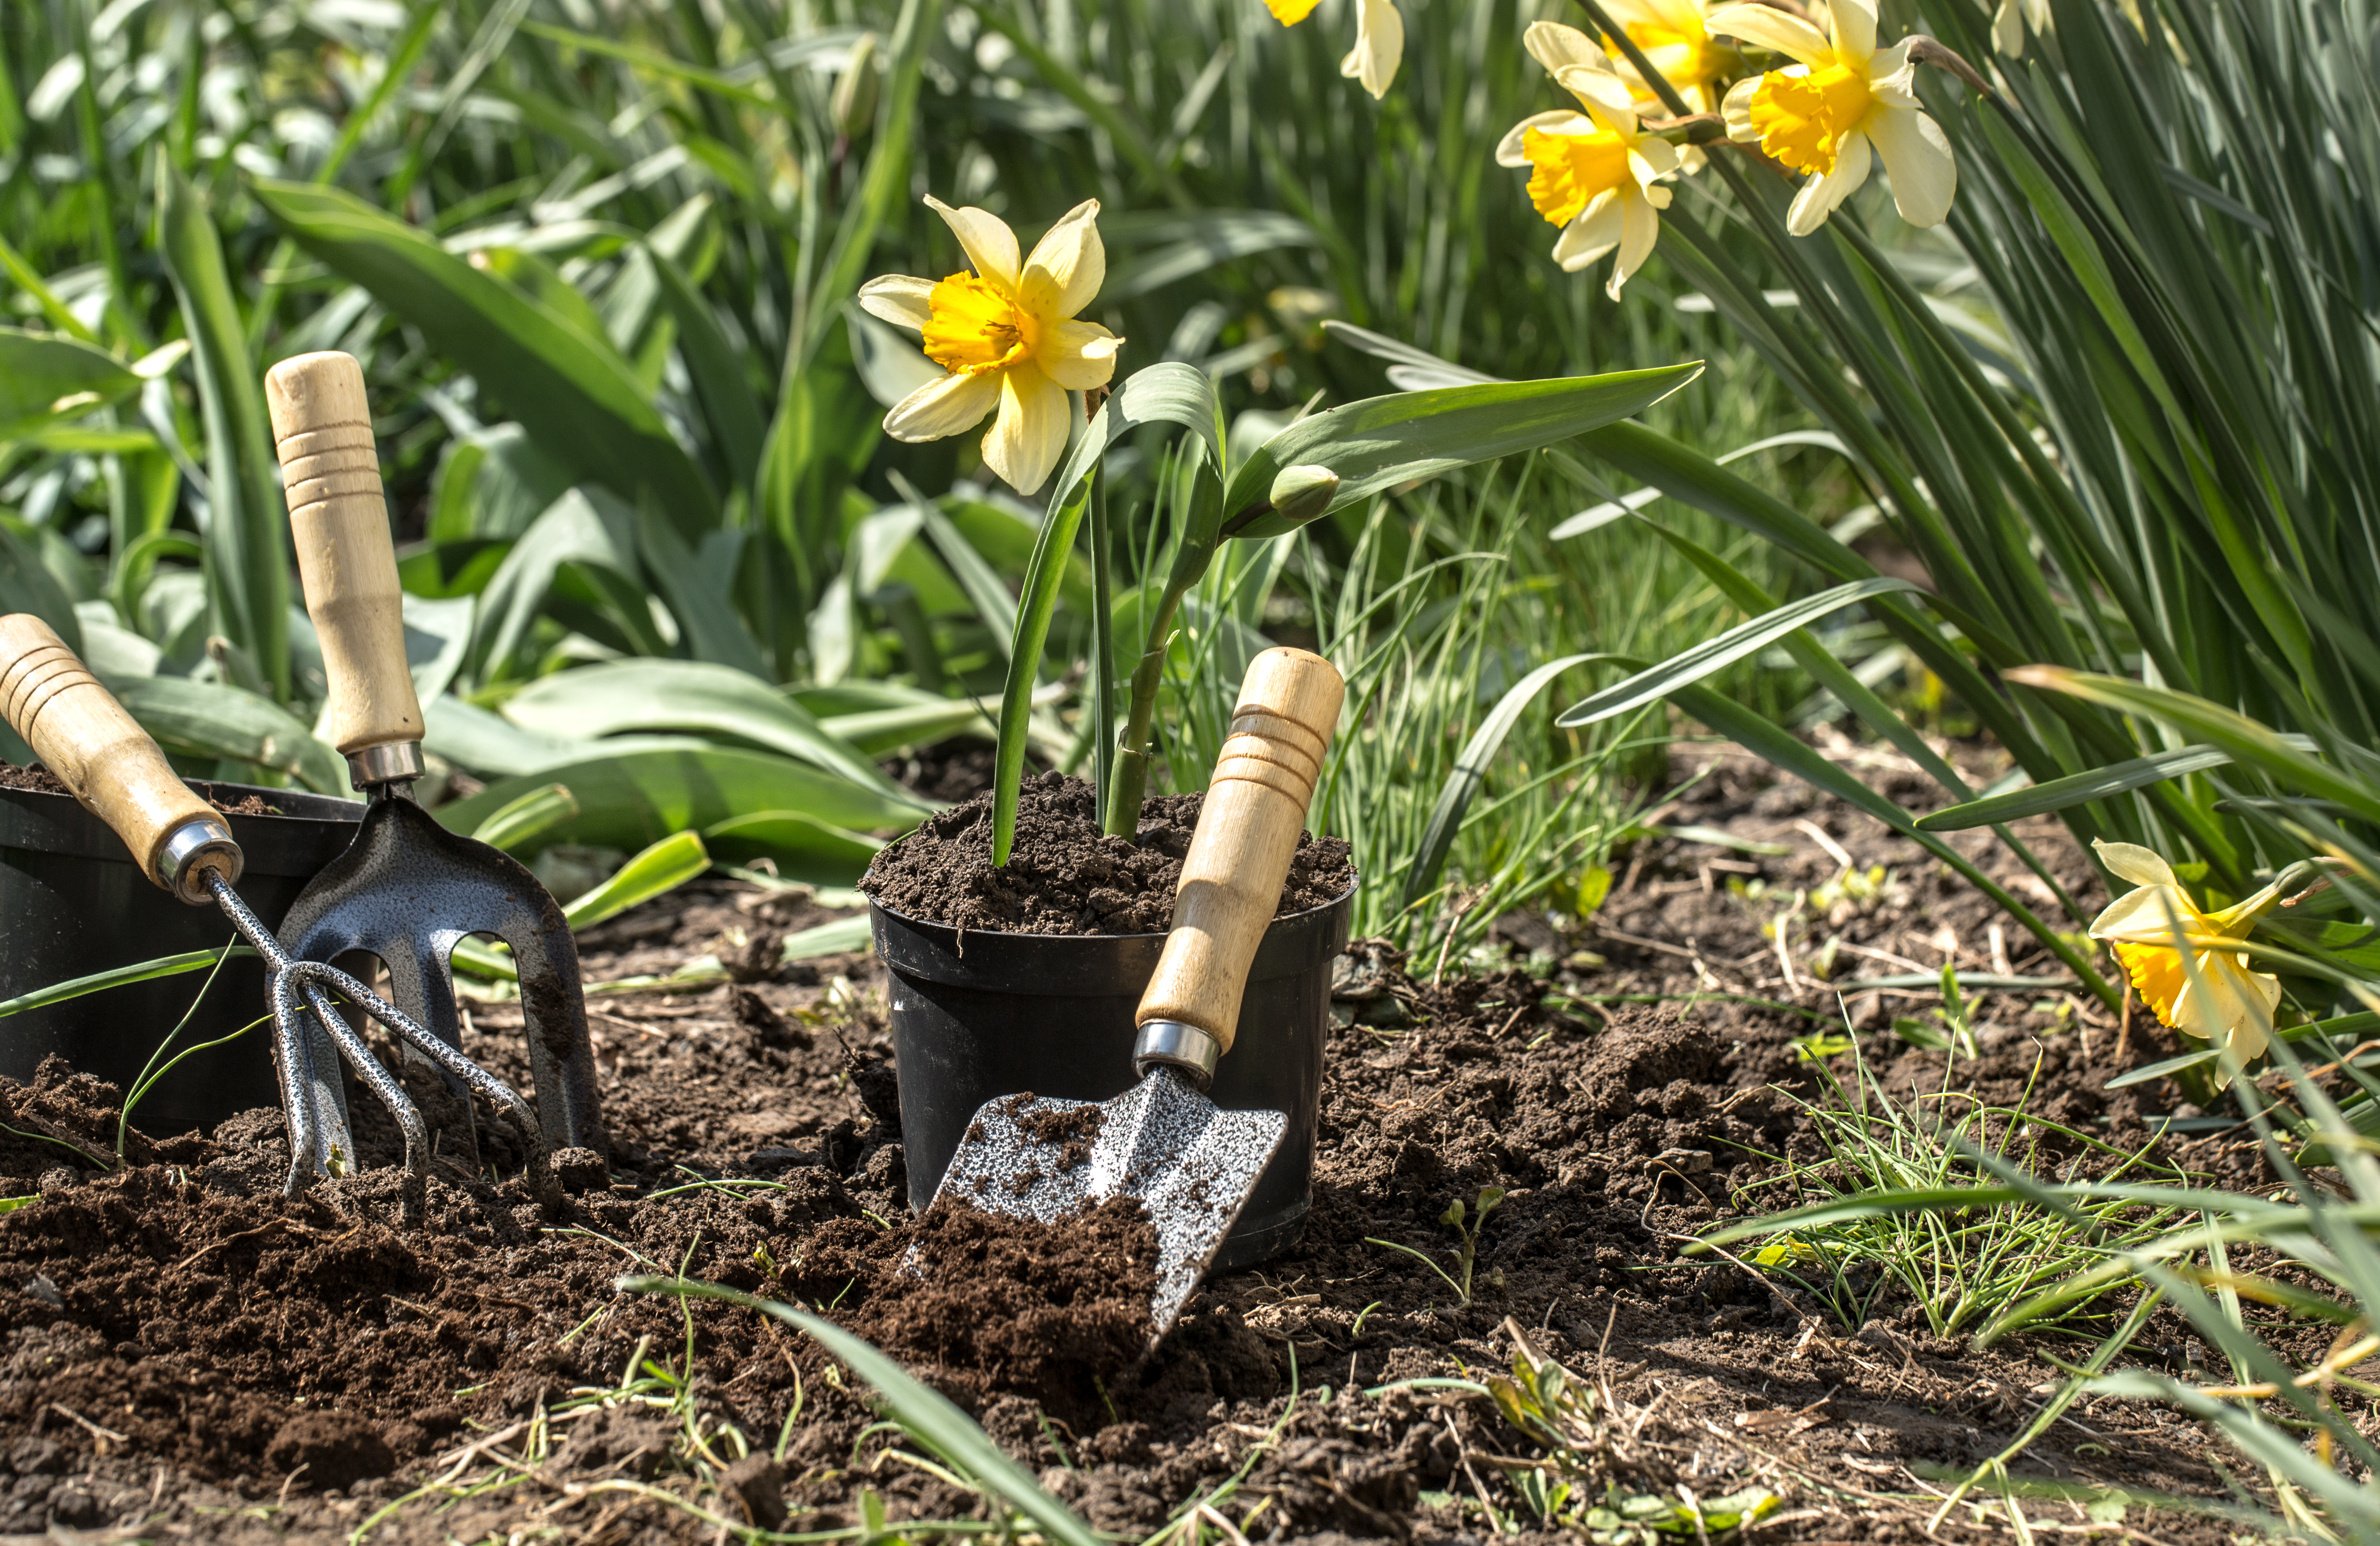 Planting yellow flowers daffodils in the garden, garden tools, flowers. Earth day